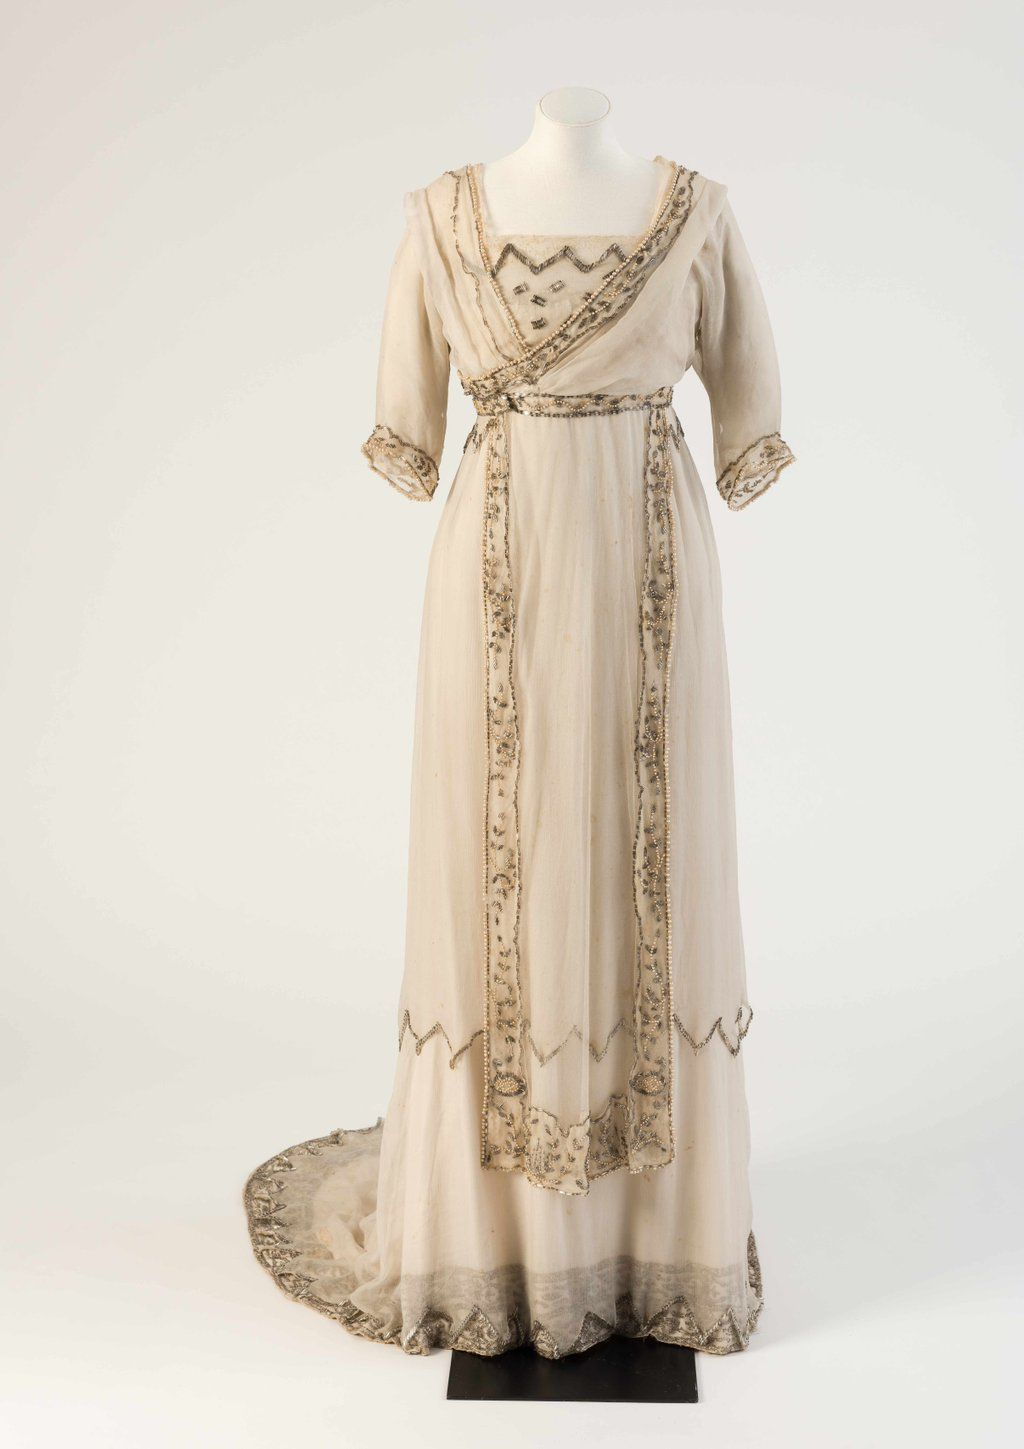 Lucile Wedding Dress 1908 From The Fashion Museum Bath UK